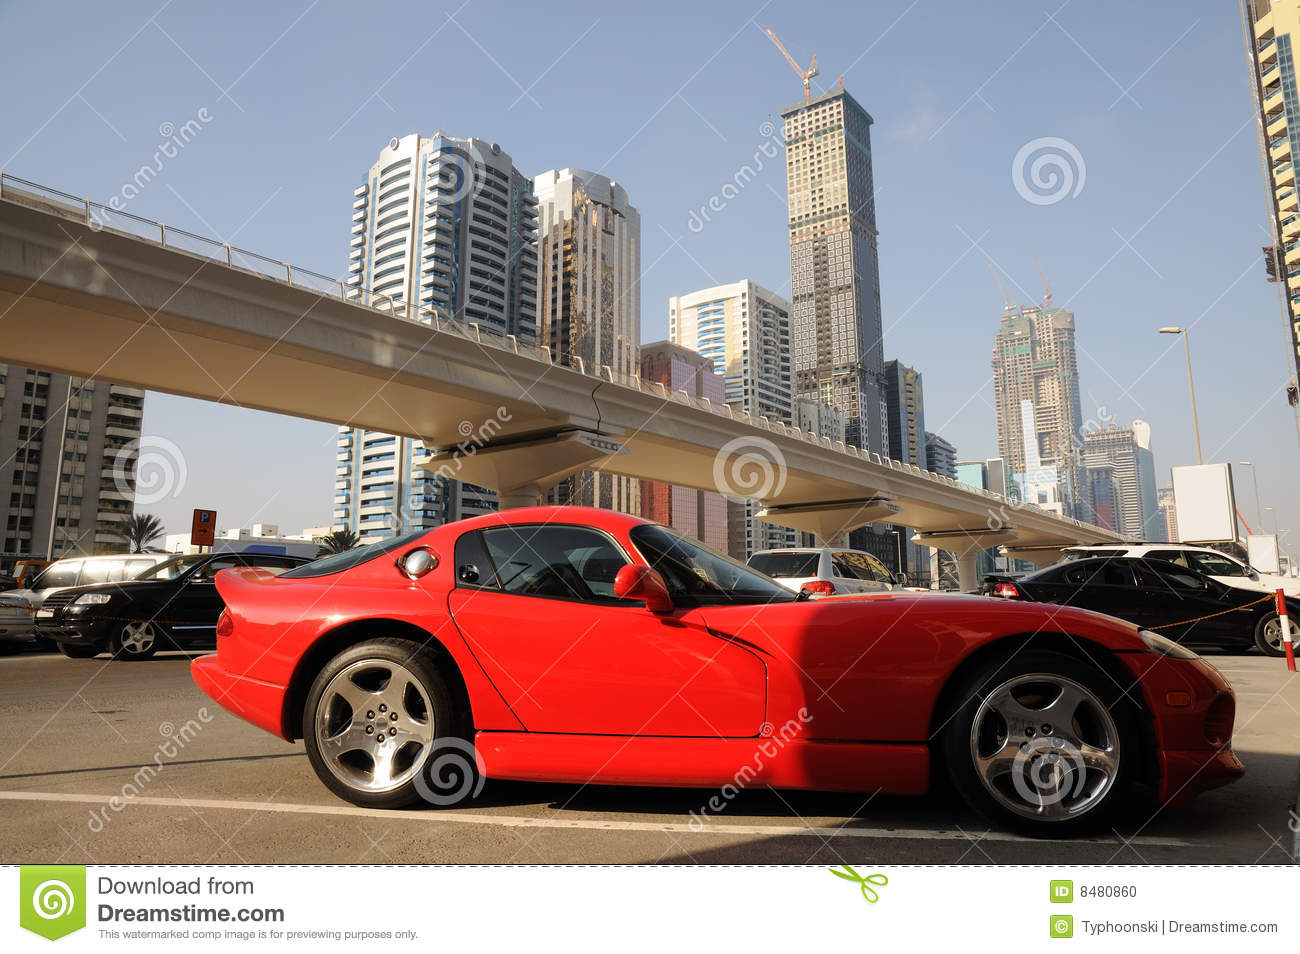 Red Sports Car In Dubai Stock Photo - Image: 8480860